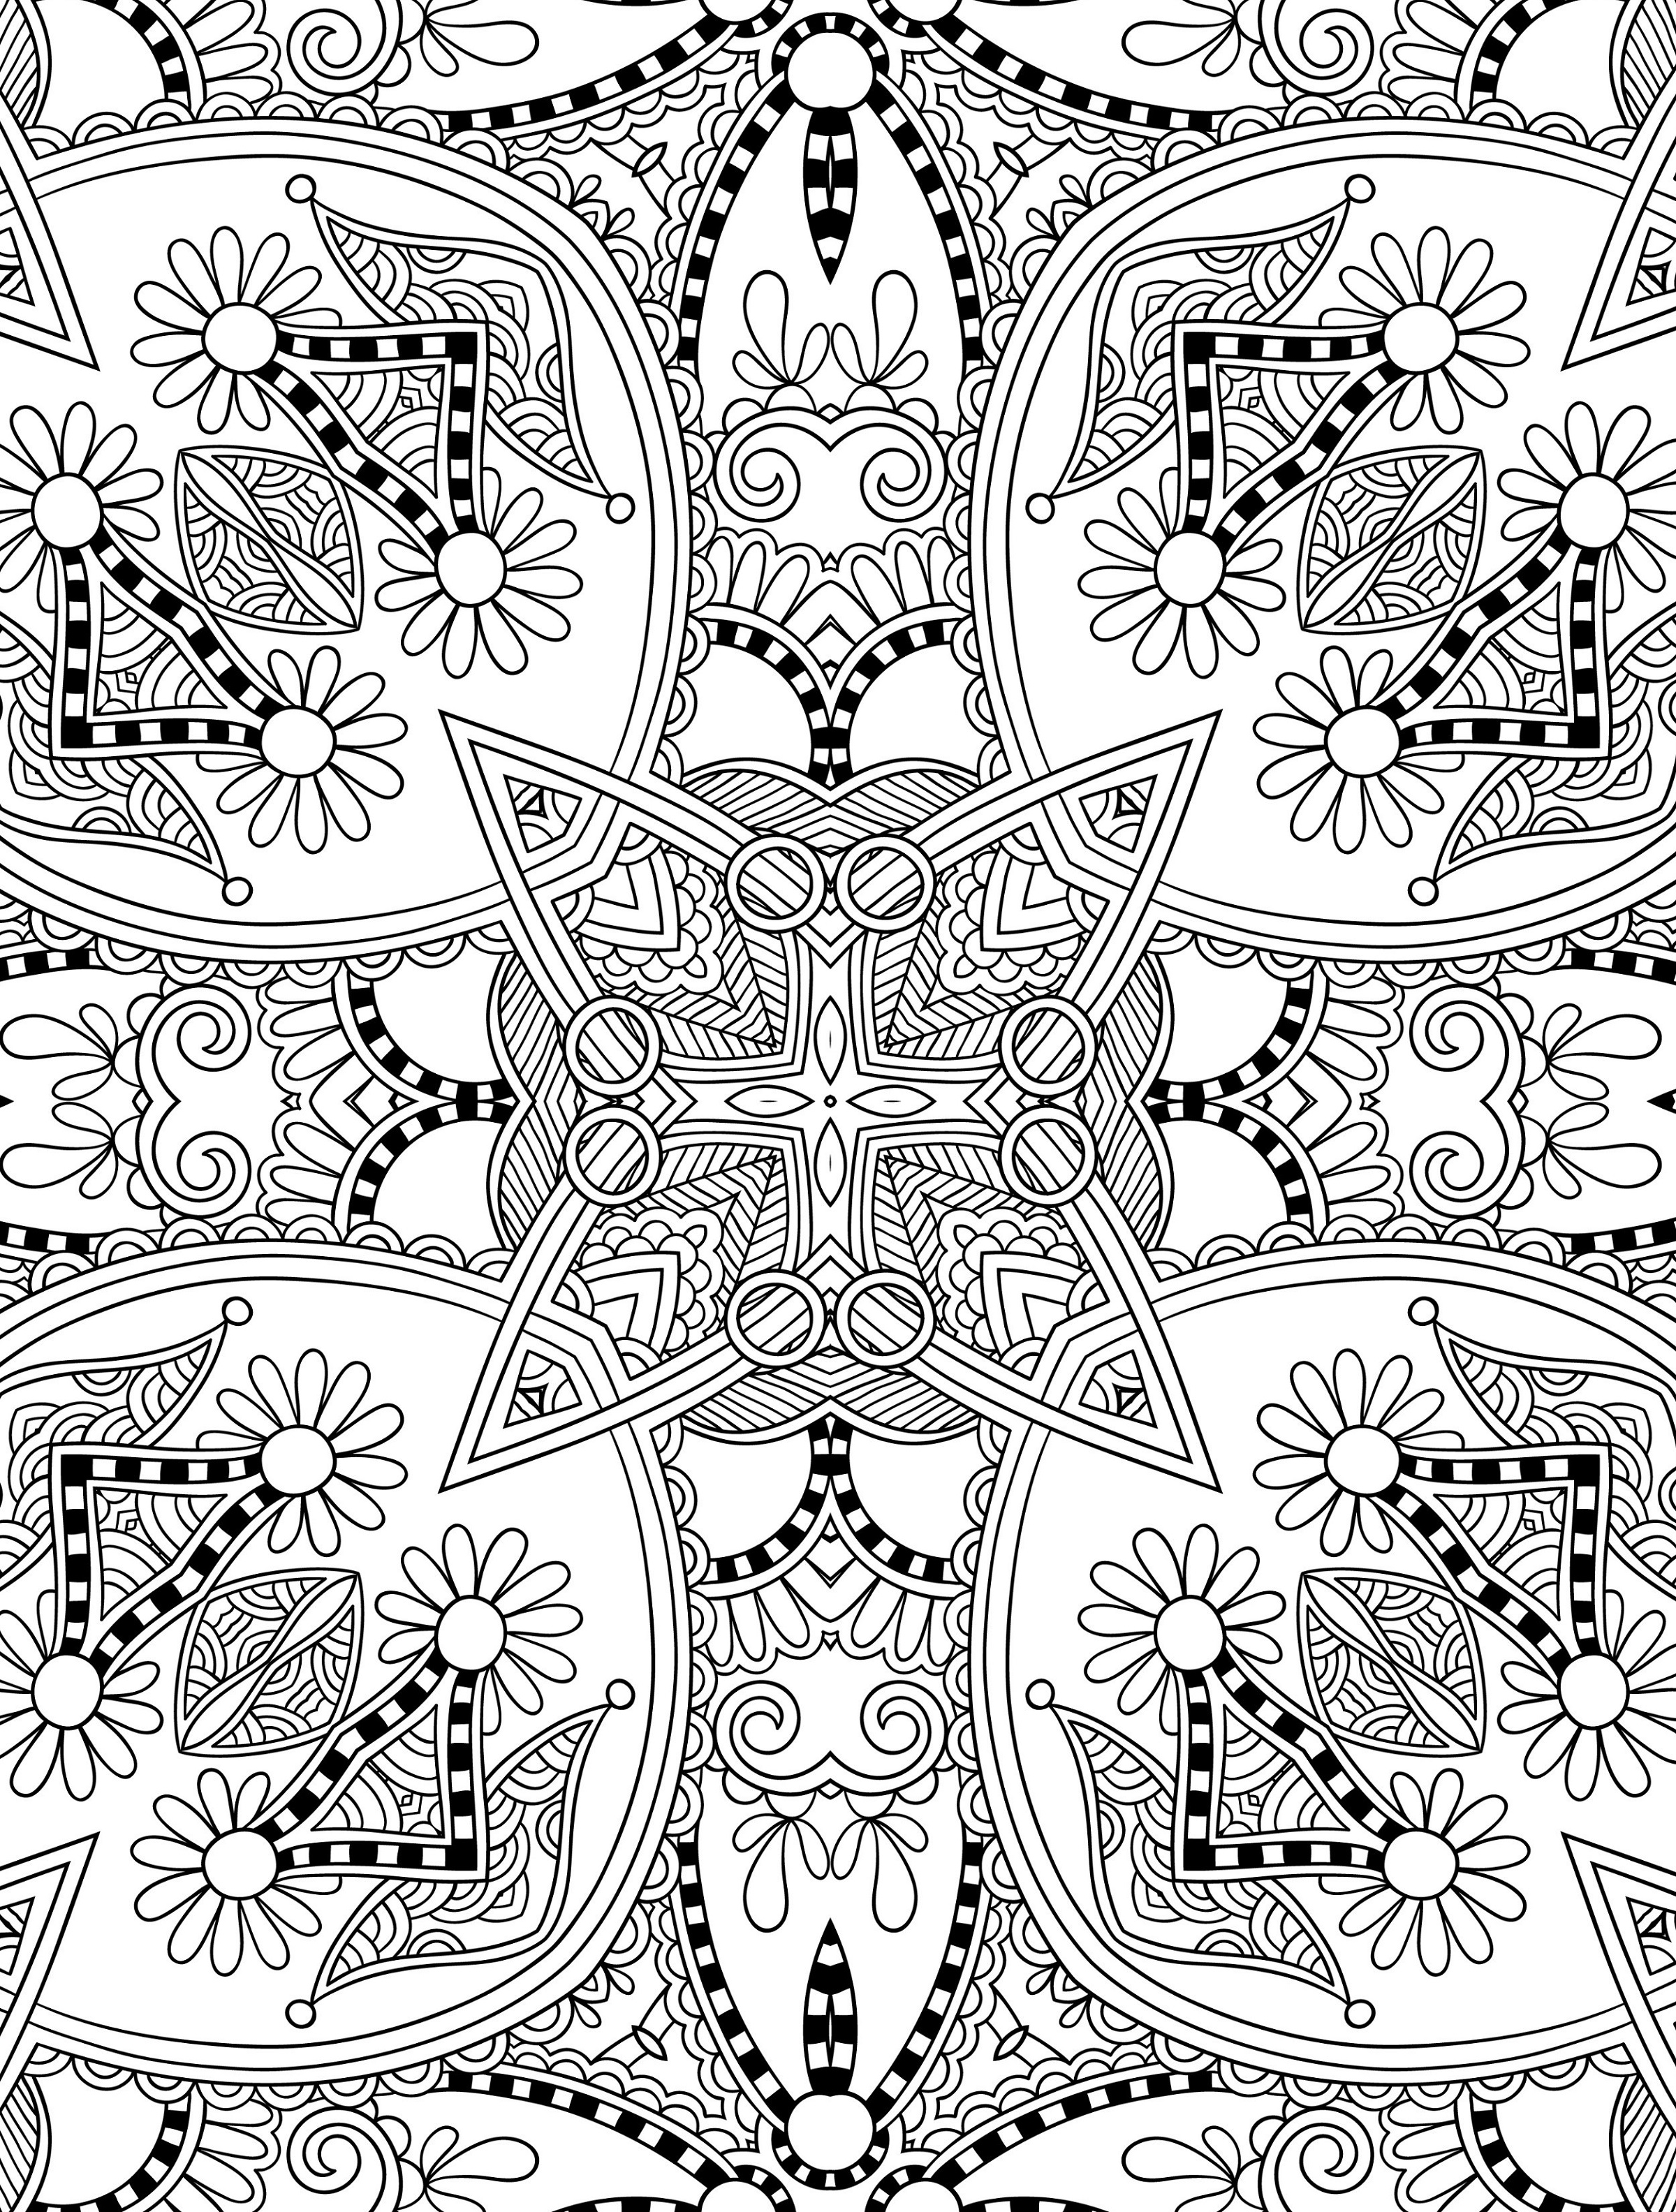 Free Printable Coloring Pages For Adults Advanced Abstract